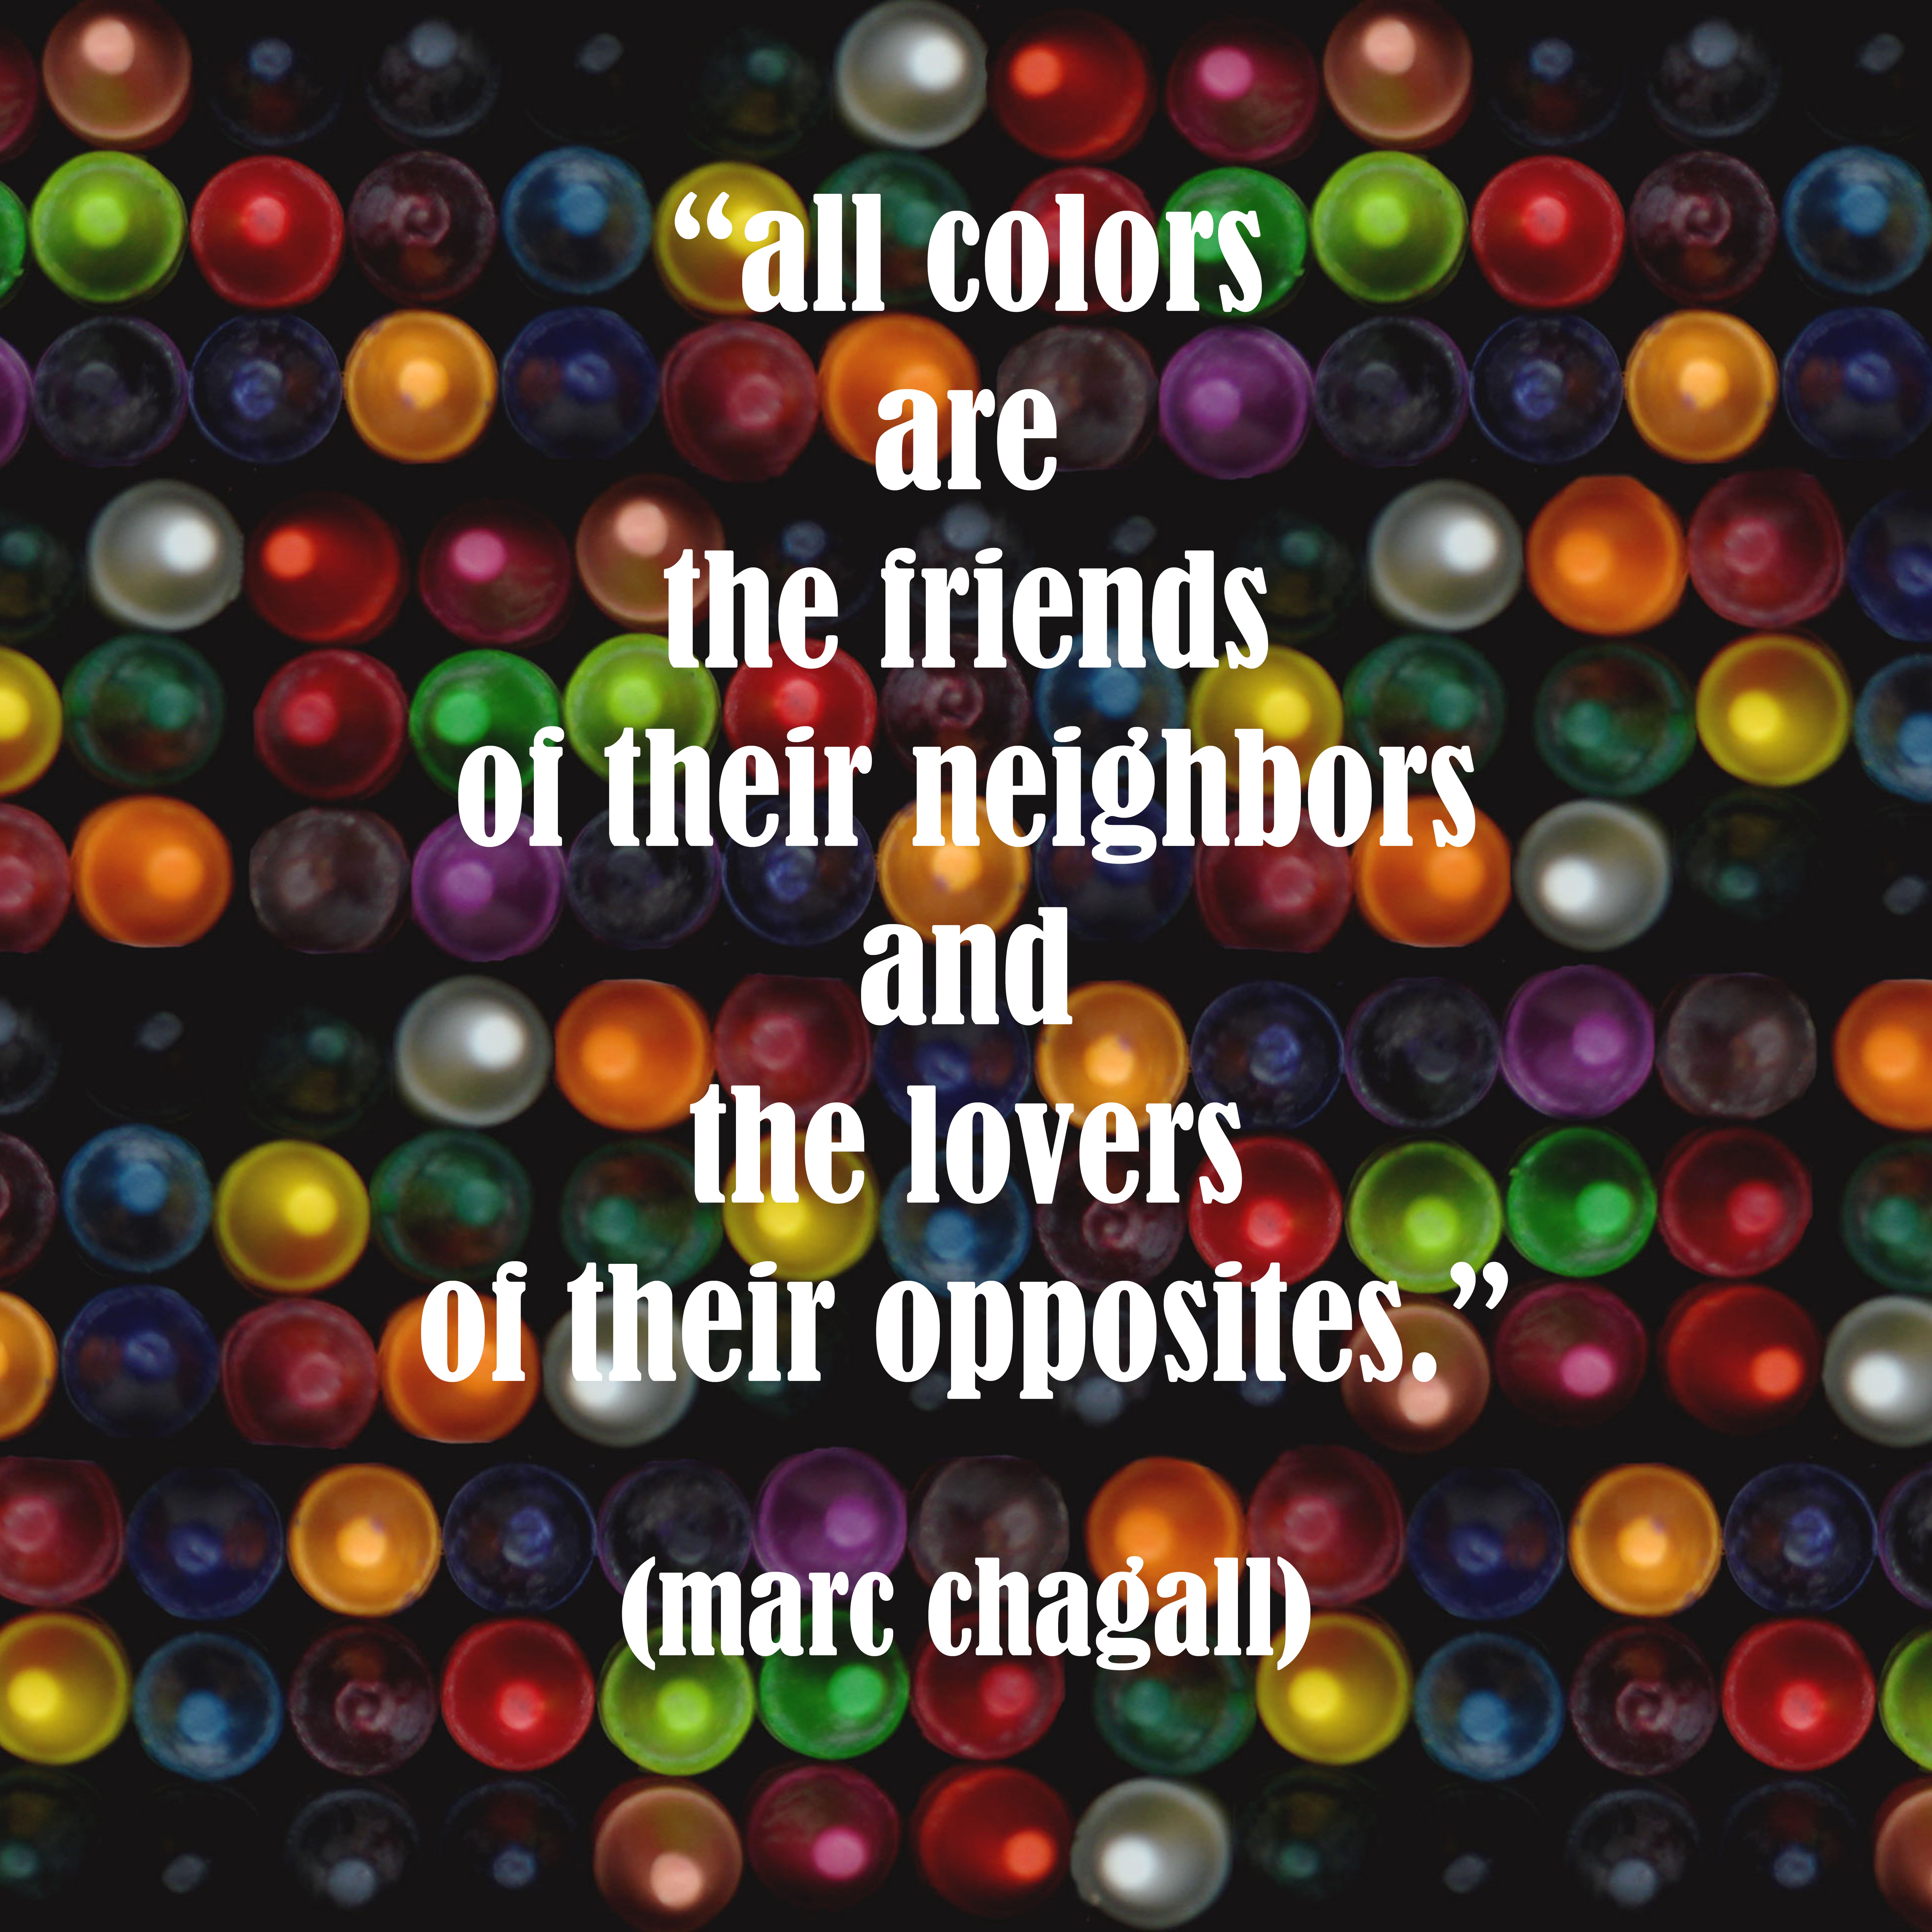 marc chagall quote copy